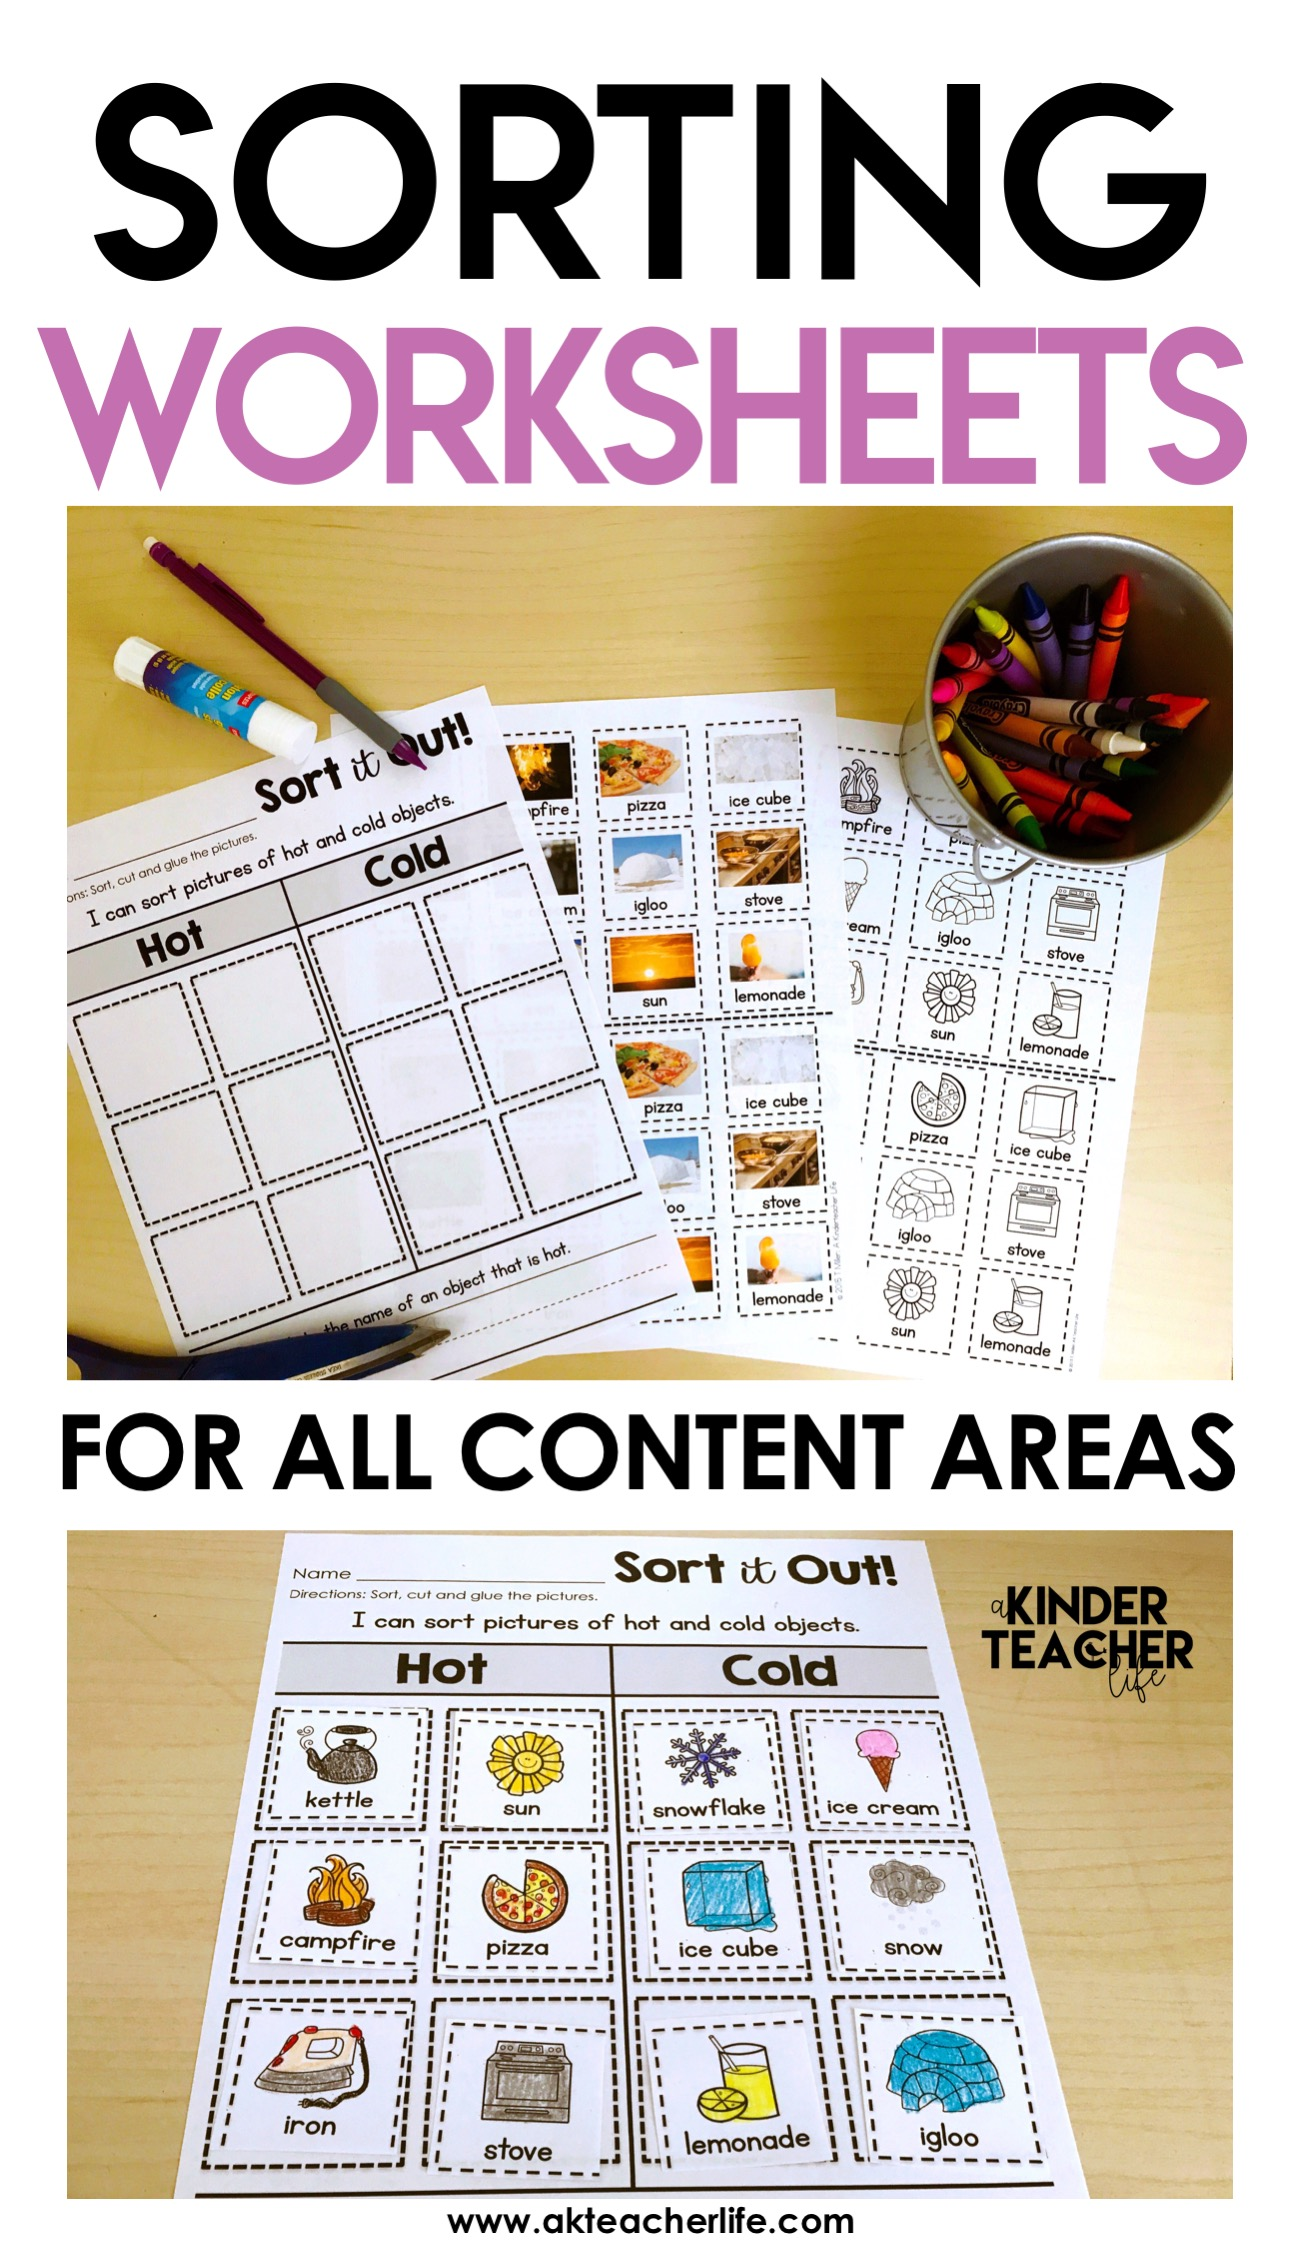 sorting worksheets for all content areas freebie included a kinderteacher life. Black Bedroom Furniture Sets. Home Design Ideas